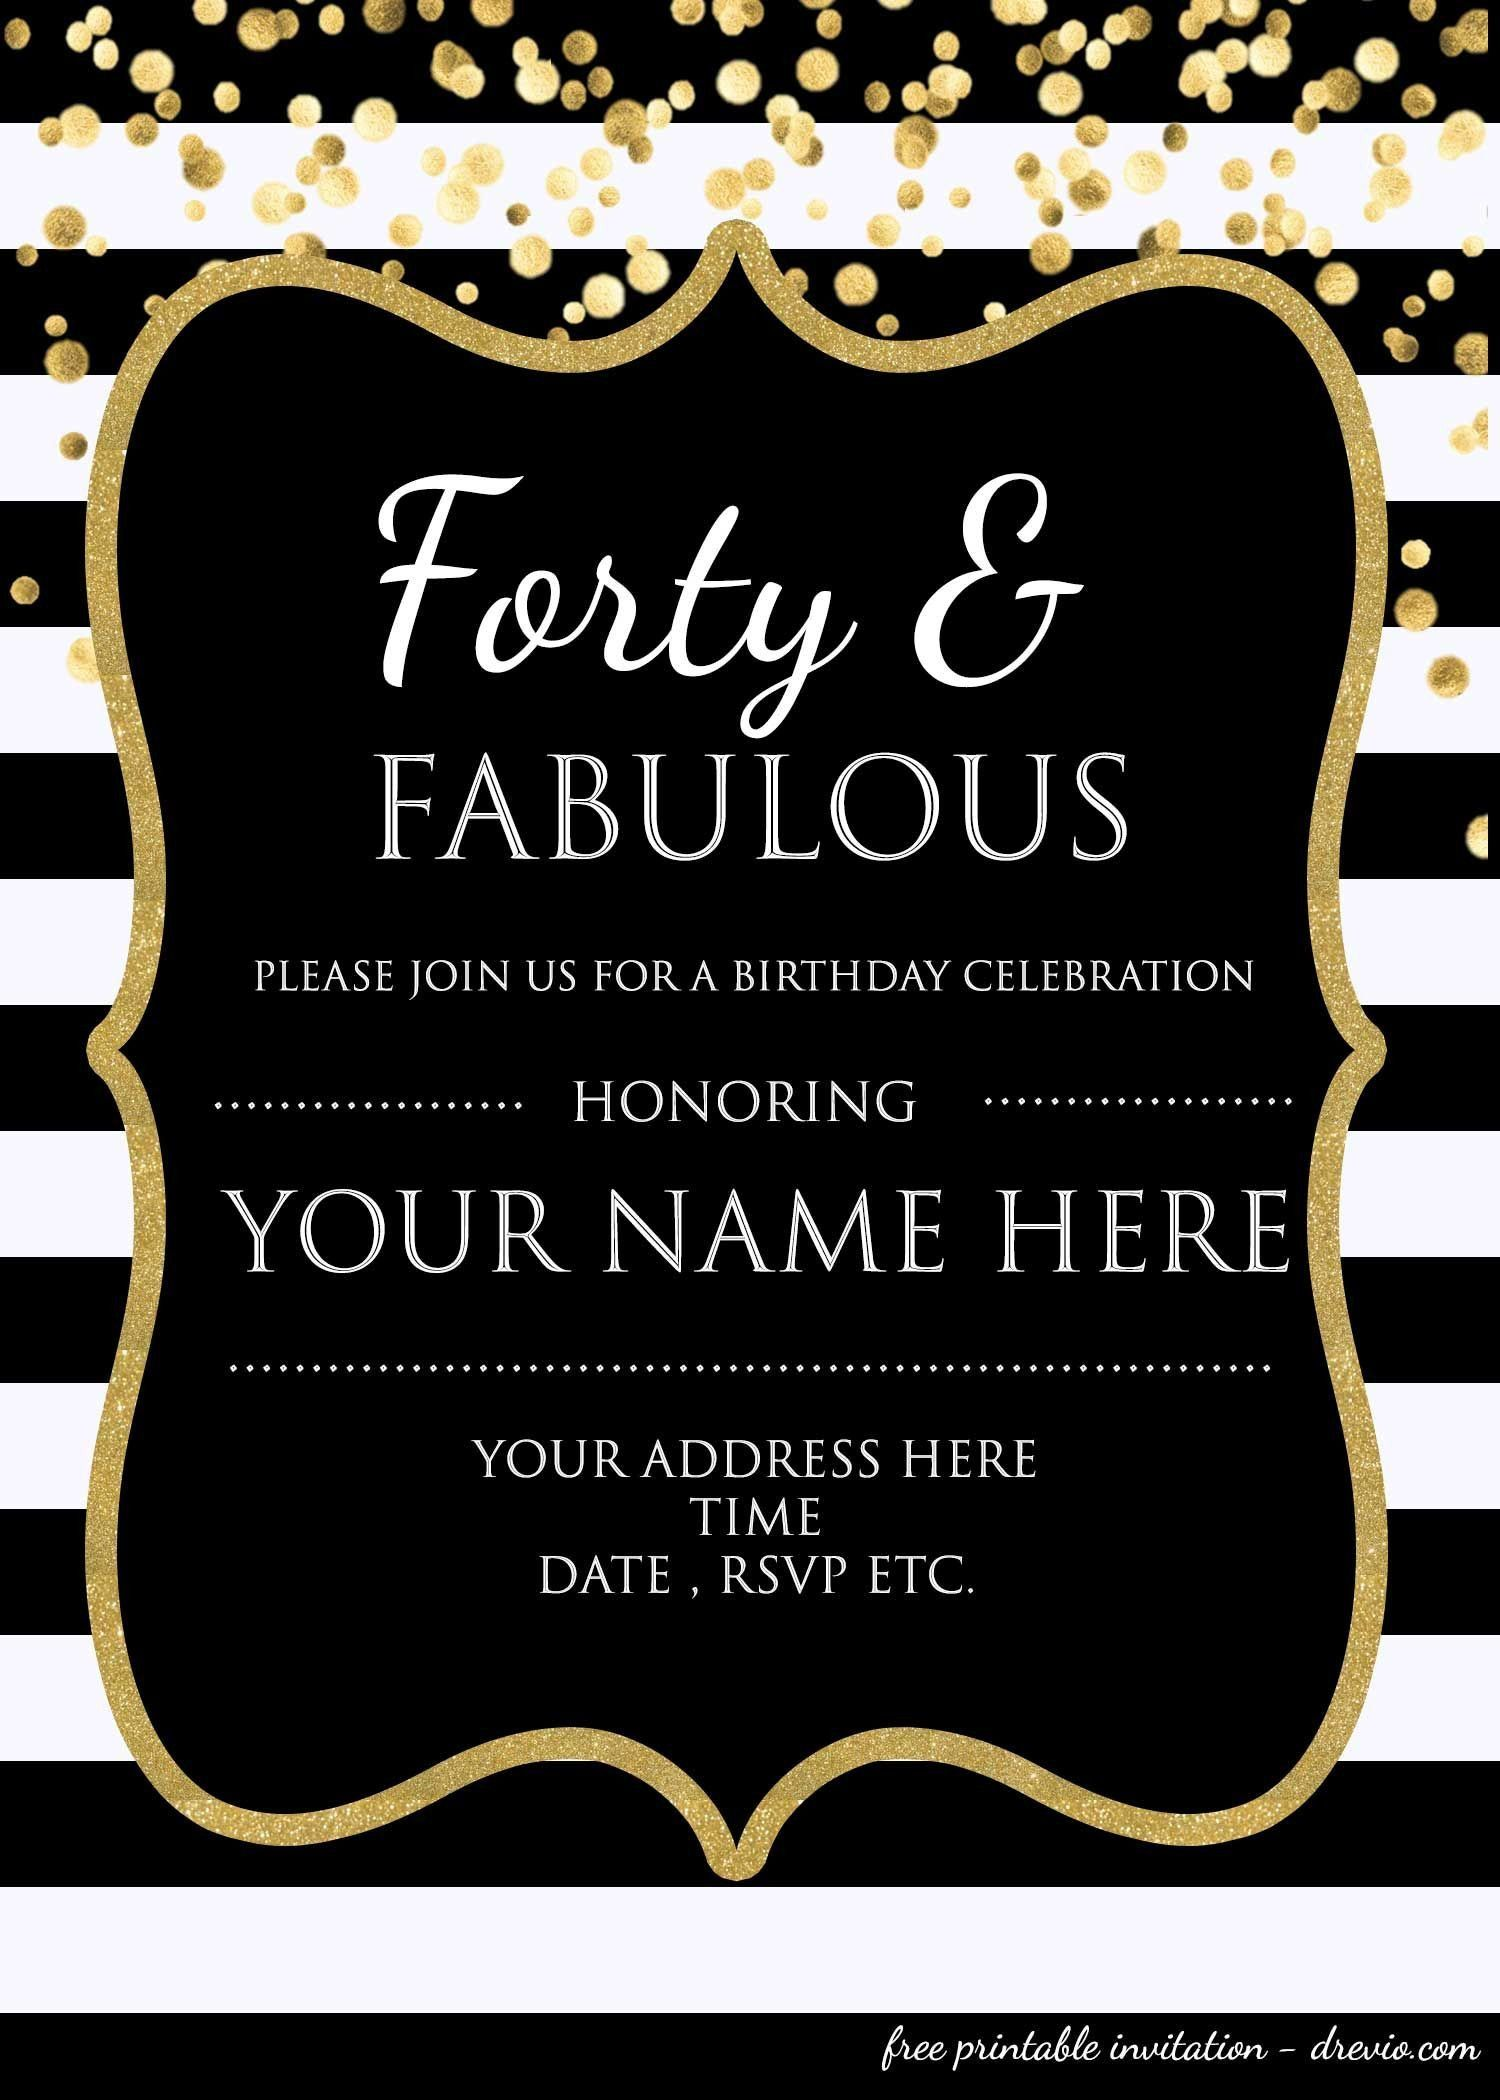 Surprise 4th Birthday Invitations forty & Fabulous 4th Birthday